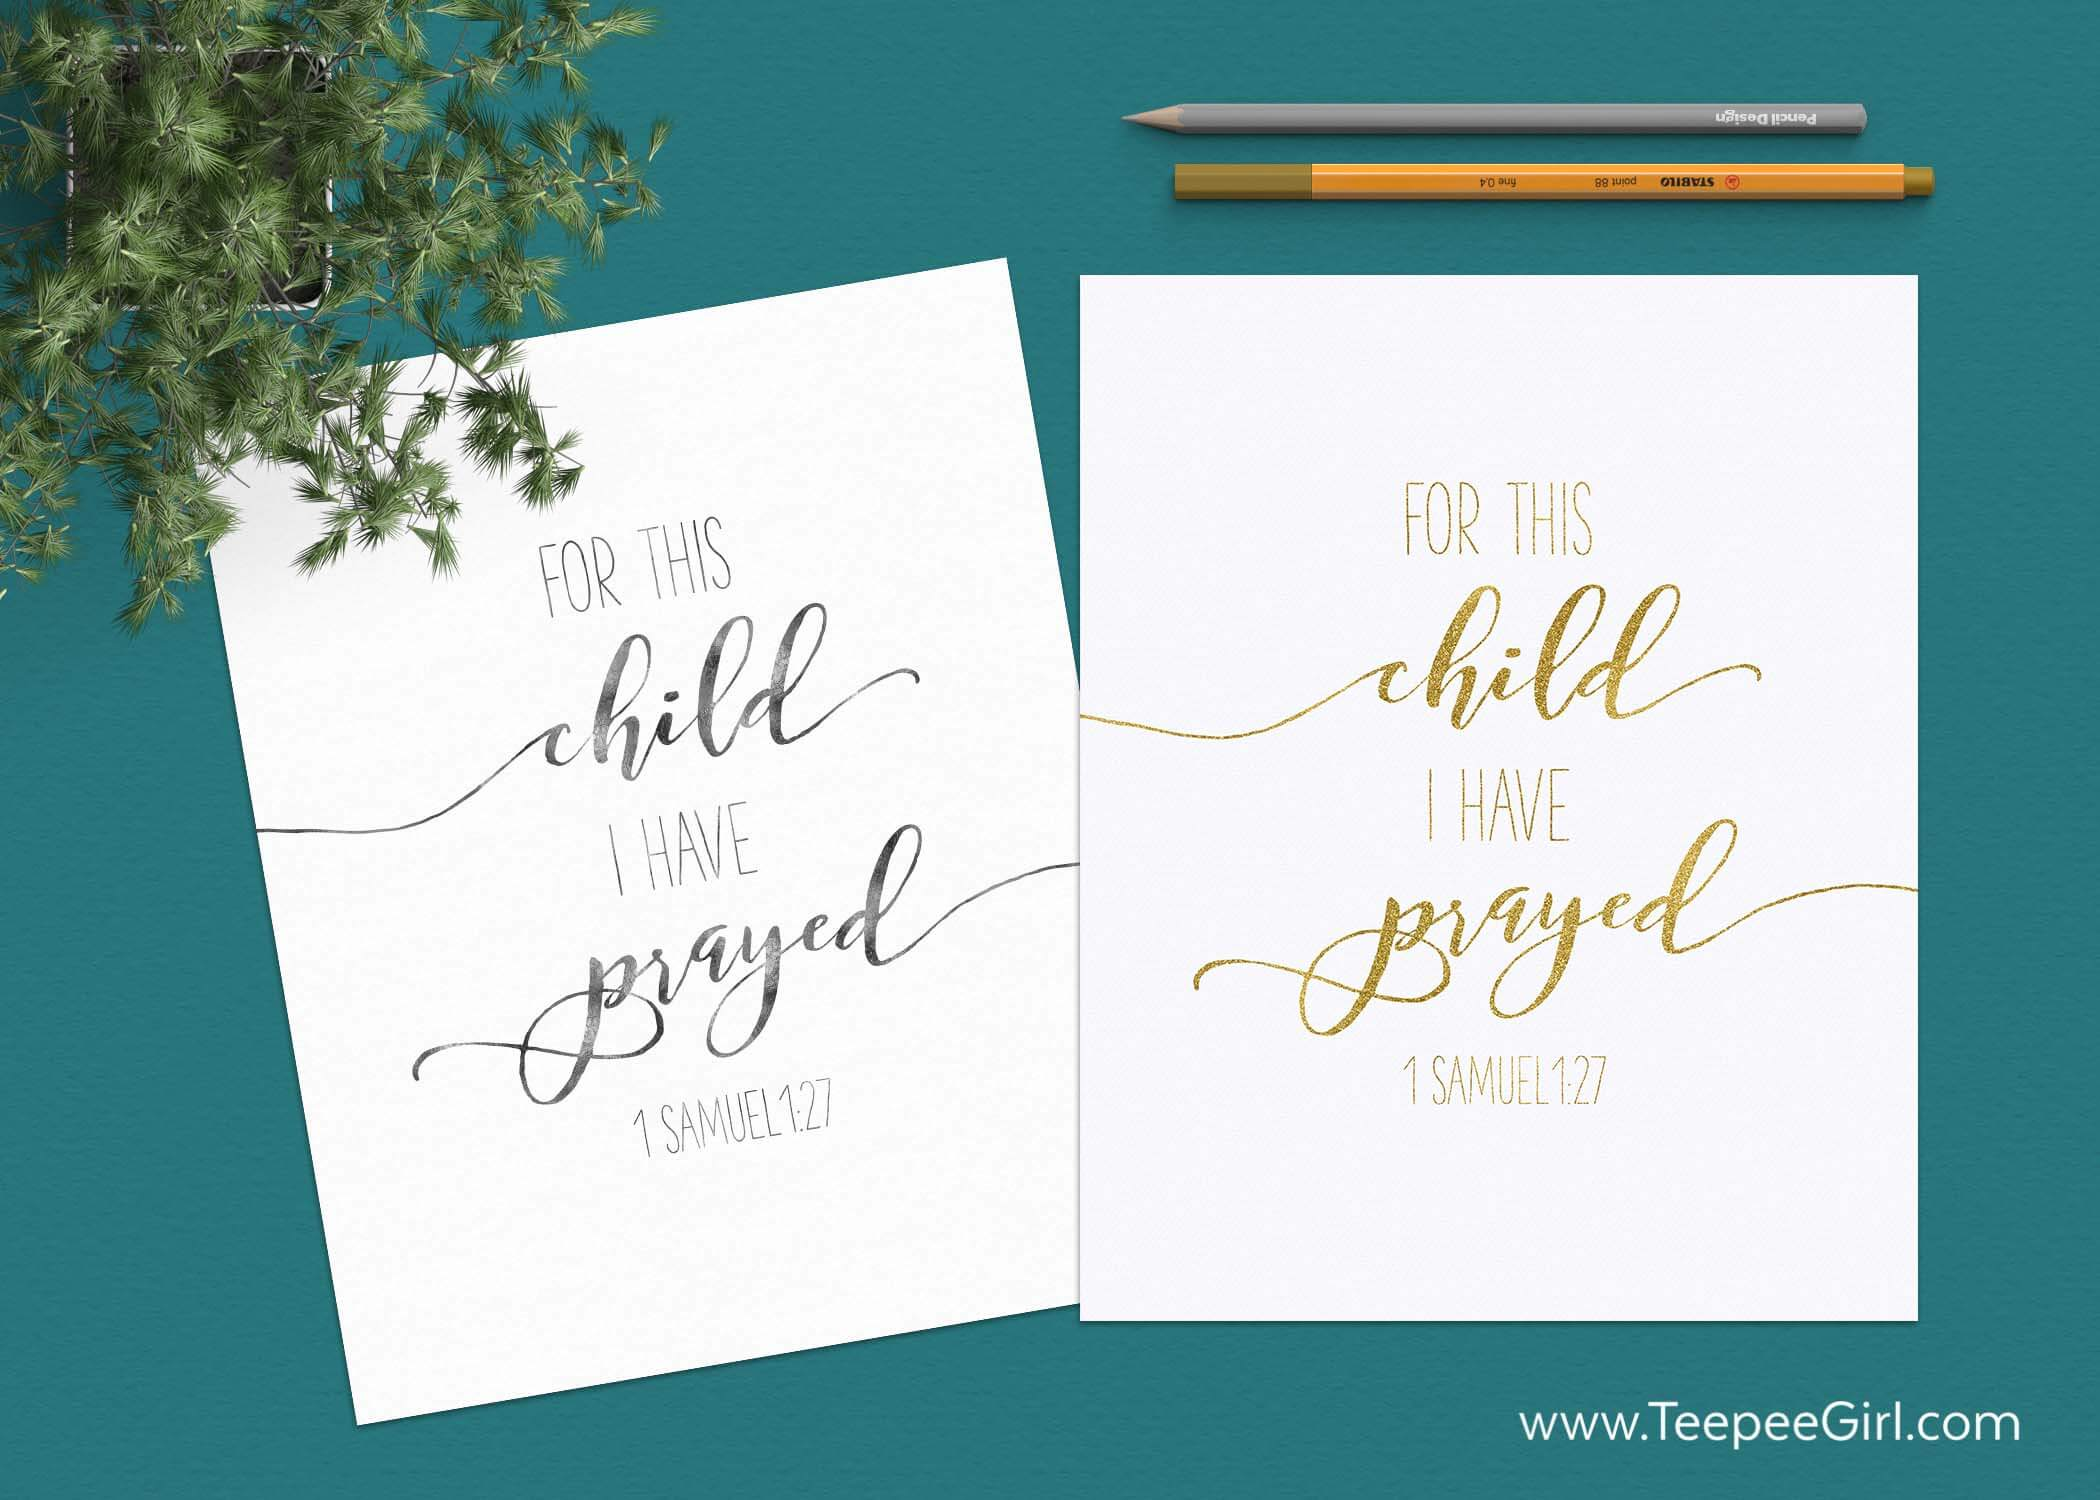 "The 5 unexpected things I learned through the adoption process, plus a free printable! ""For this child I have prayed,"" 1 Samuel 1:27. Get it today at www.TeepeeGirl.com!"